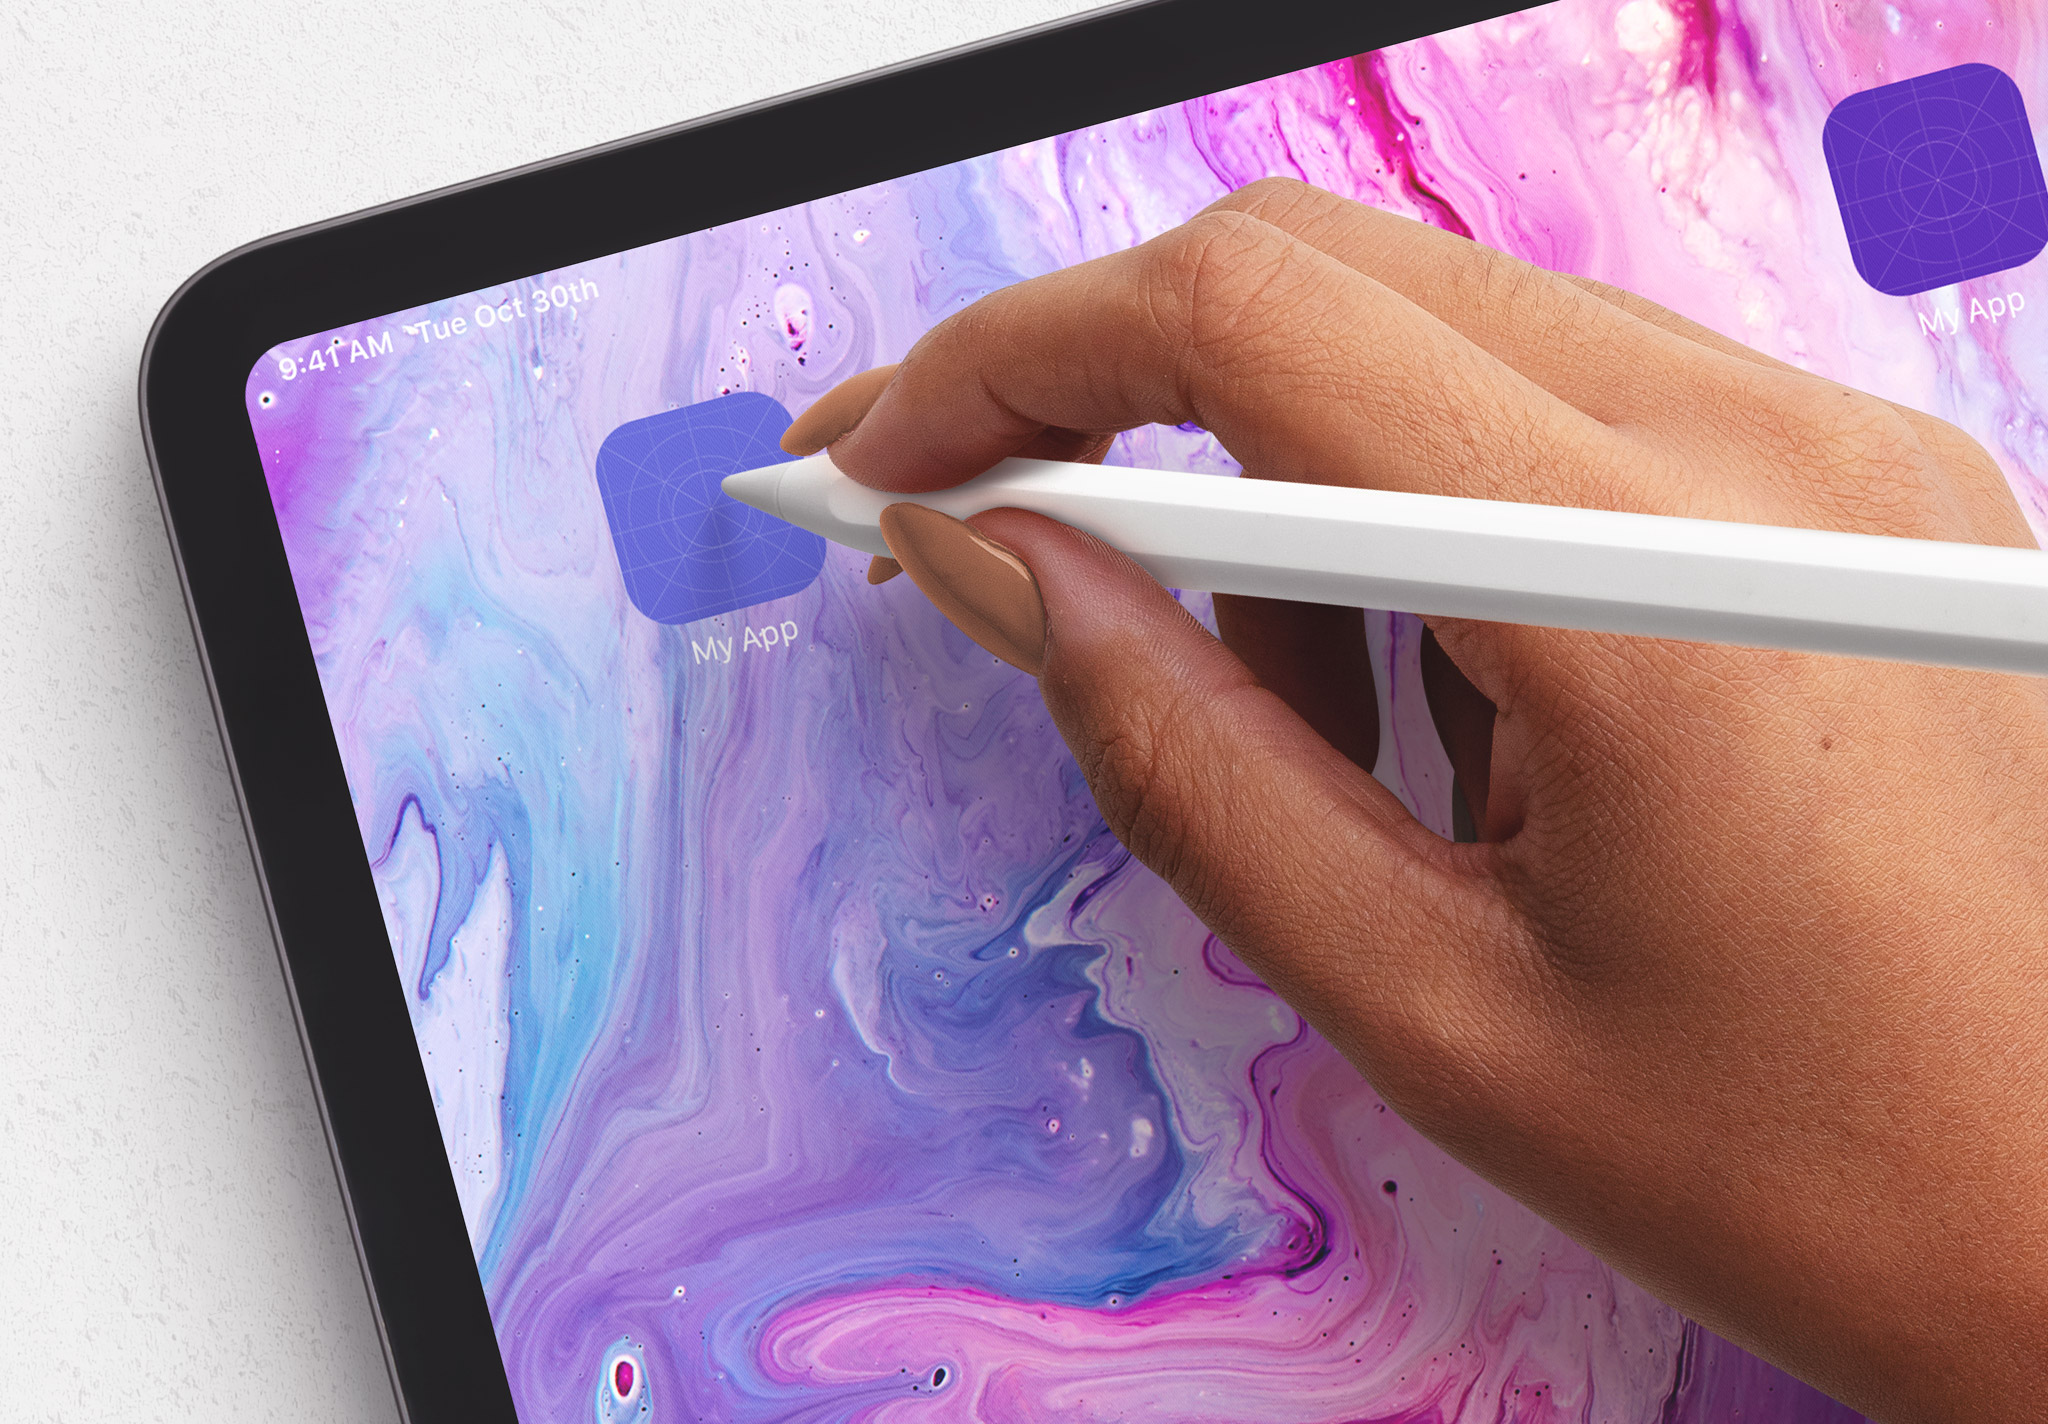 Tablet Pro Mockup with Hand Holding Pencil Image04